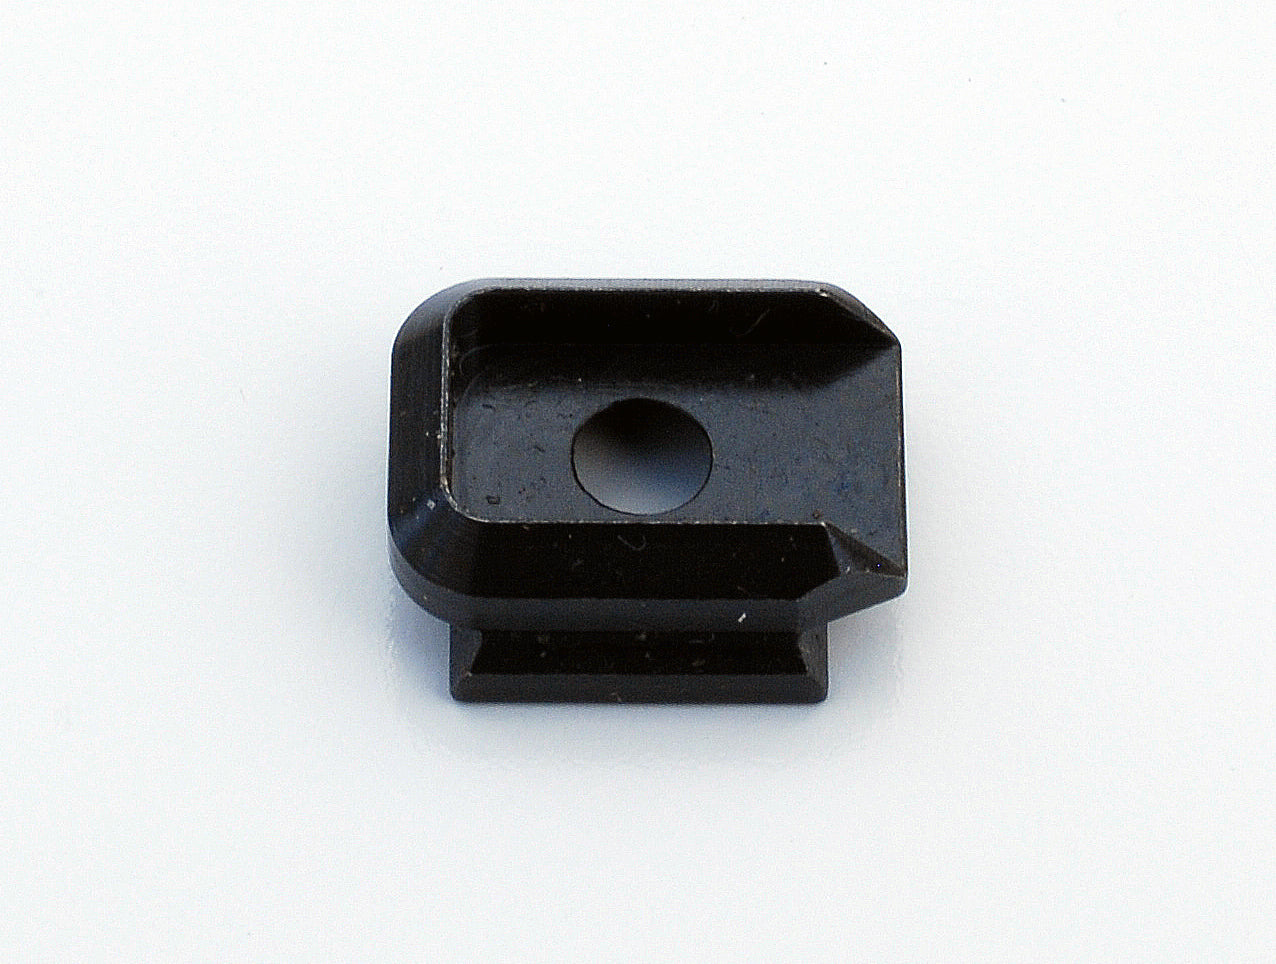 FRONT SIGHT BASE FOR ARPS: SPRINGFIELD 1911